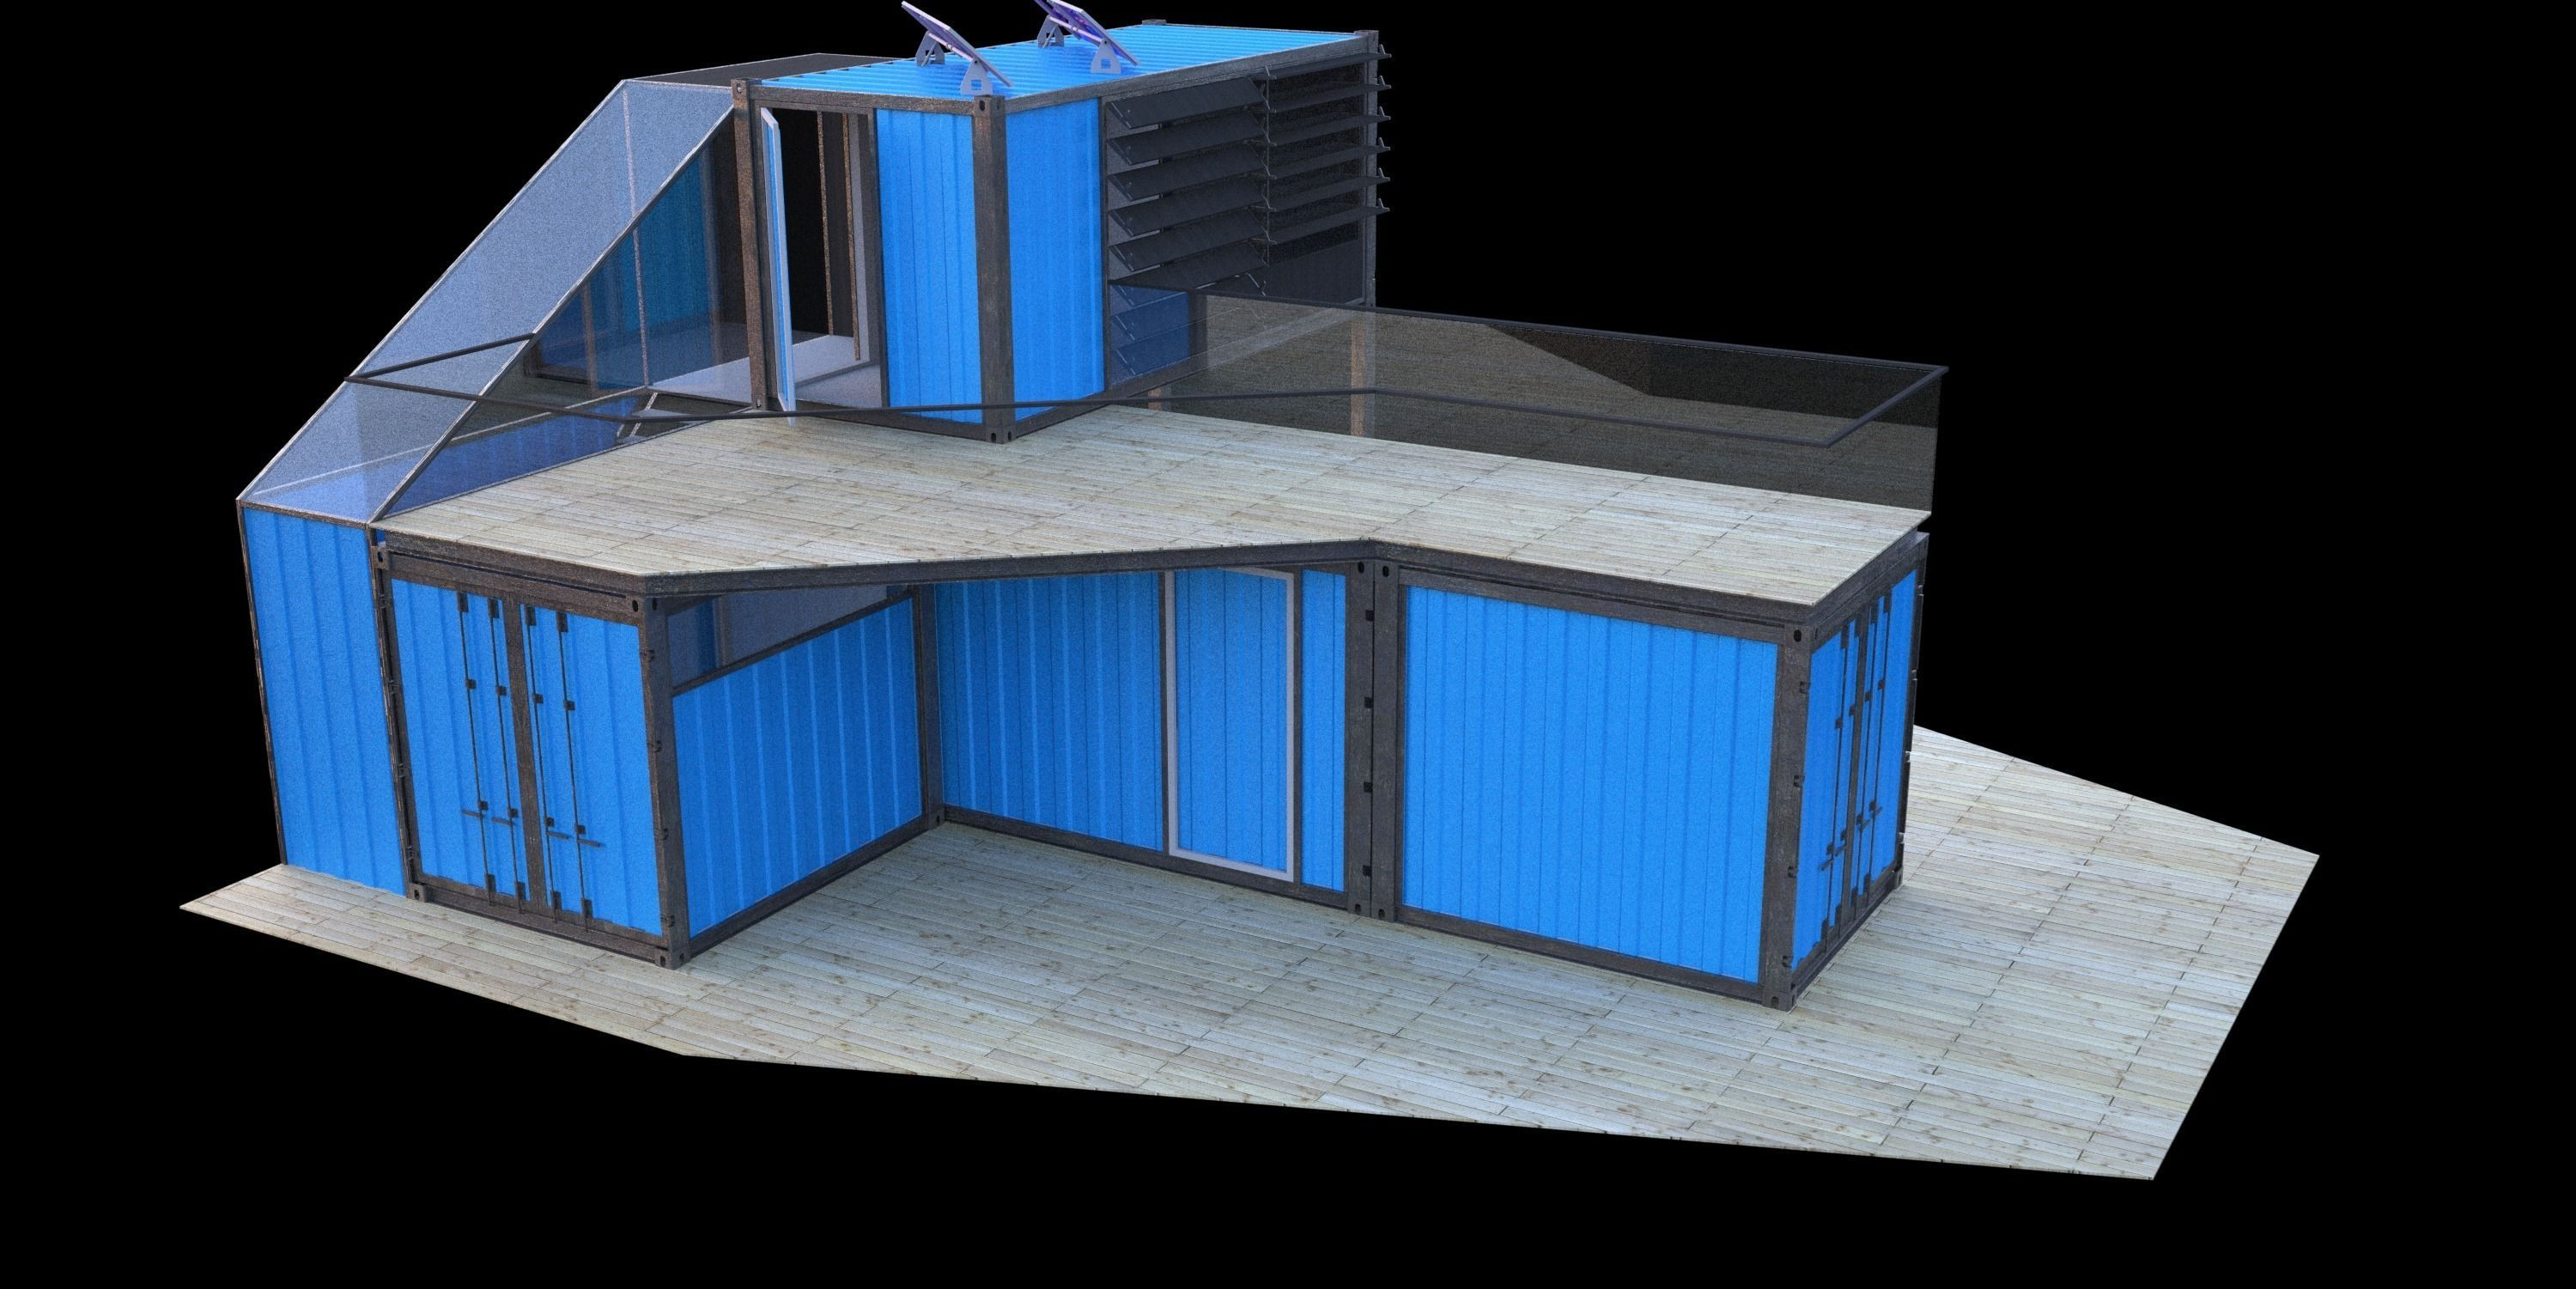 Small container home free 3d model Home 3d model